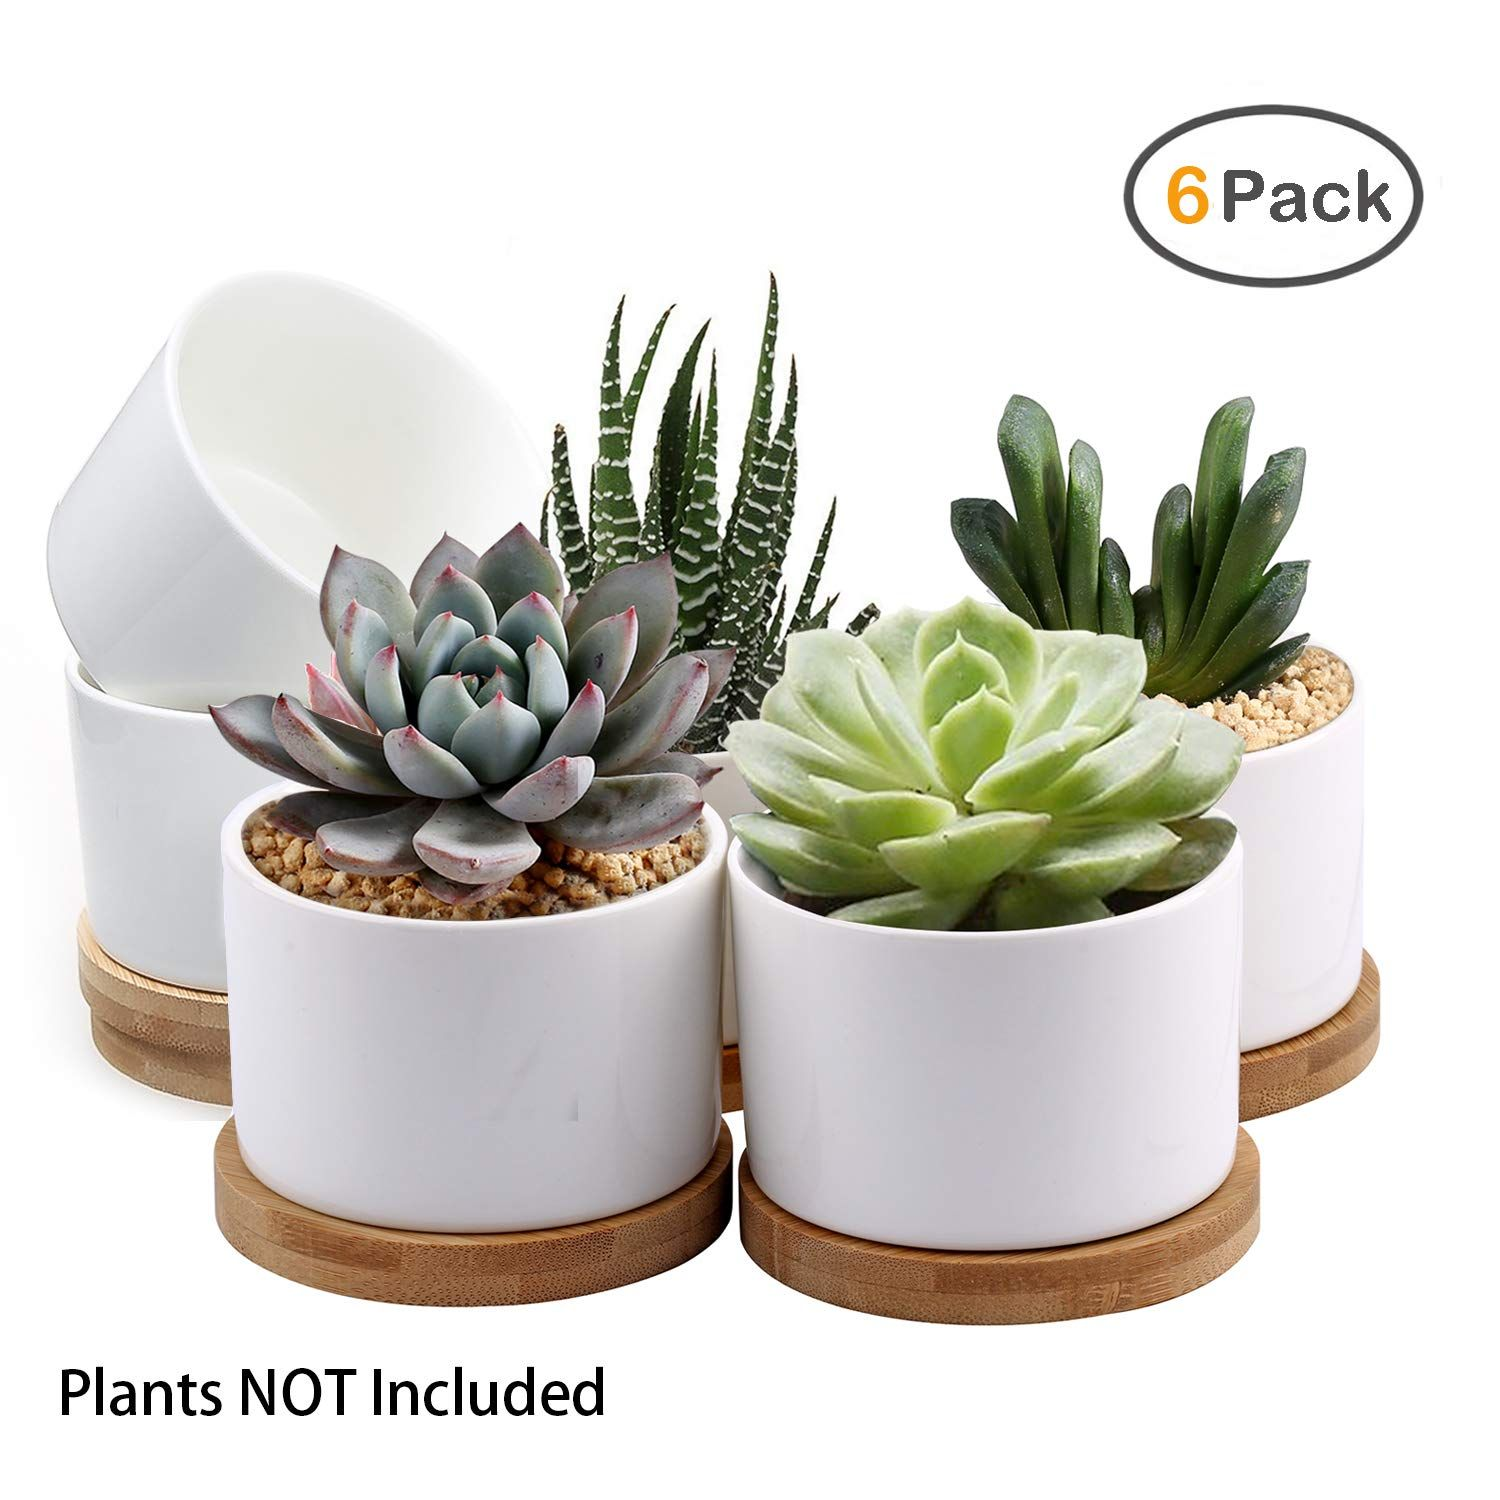 Loveboutique Ceramic Flower Plant Pot Size 4 Inch 6 Inch And 7 Inch Modern Set Of 3 Ceramic Plant Pots Indoor Plant Pots Plastic Plant Pots